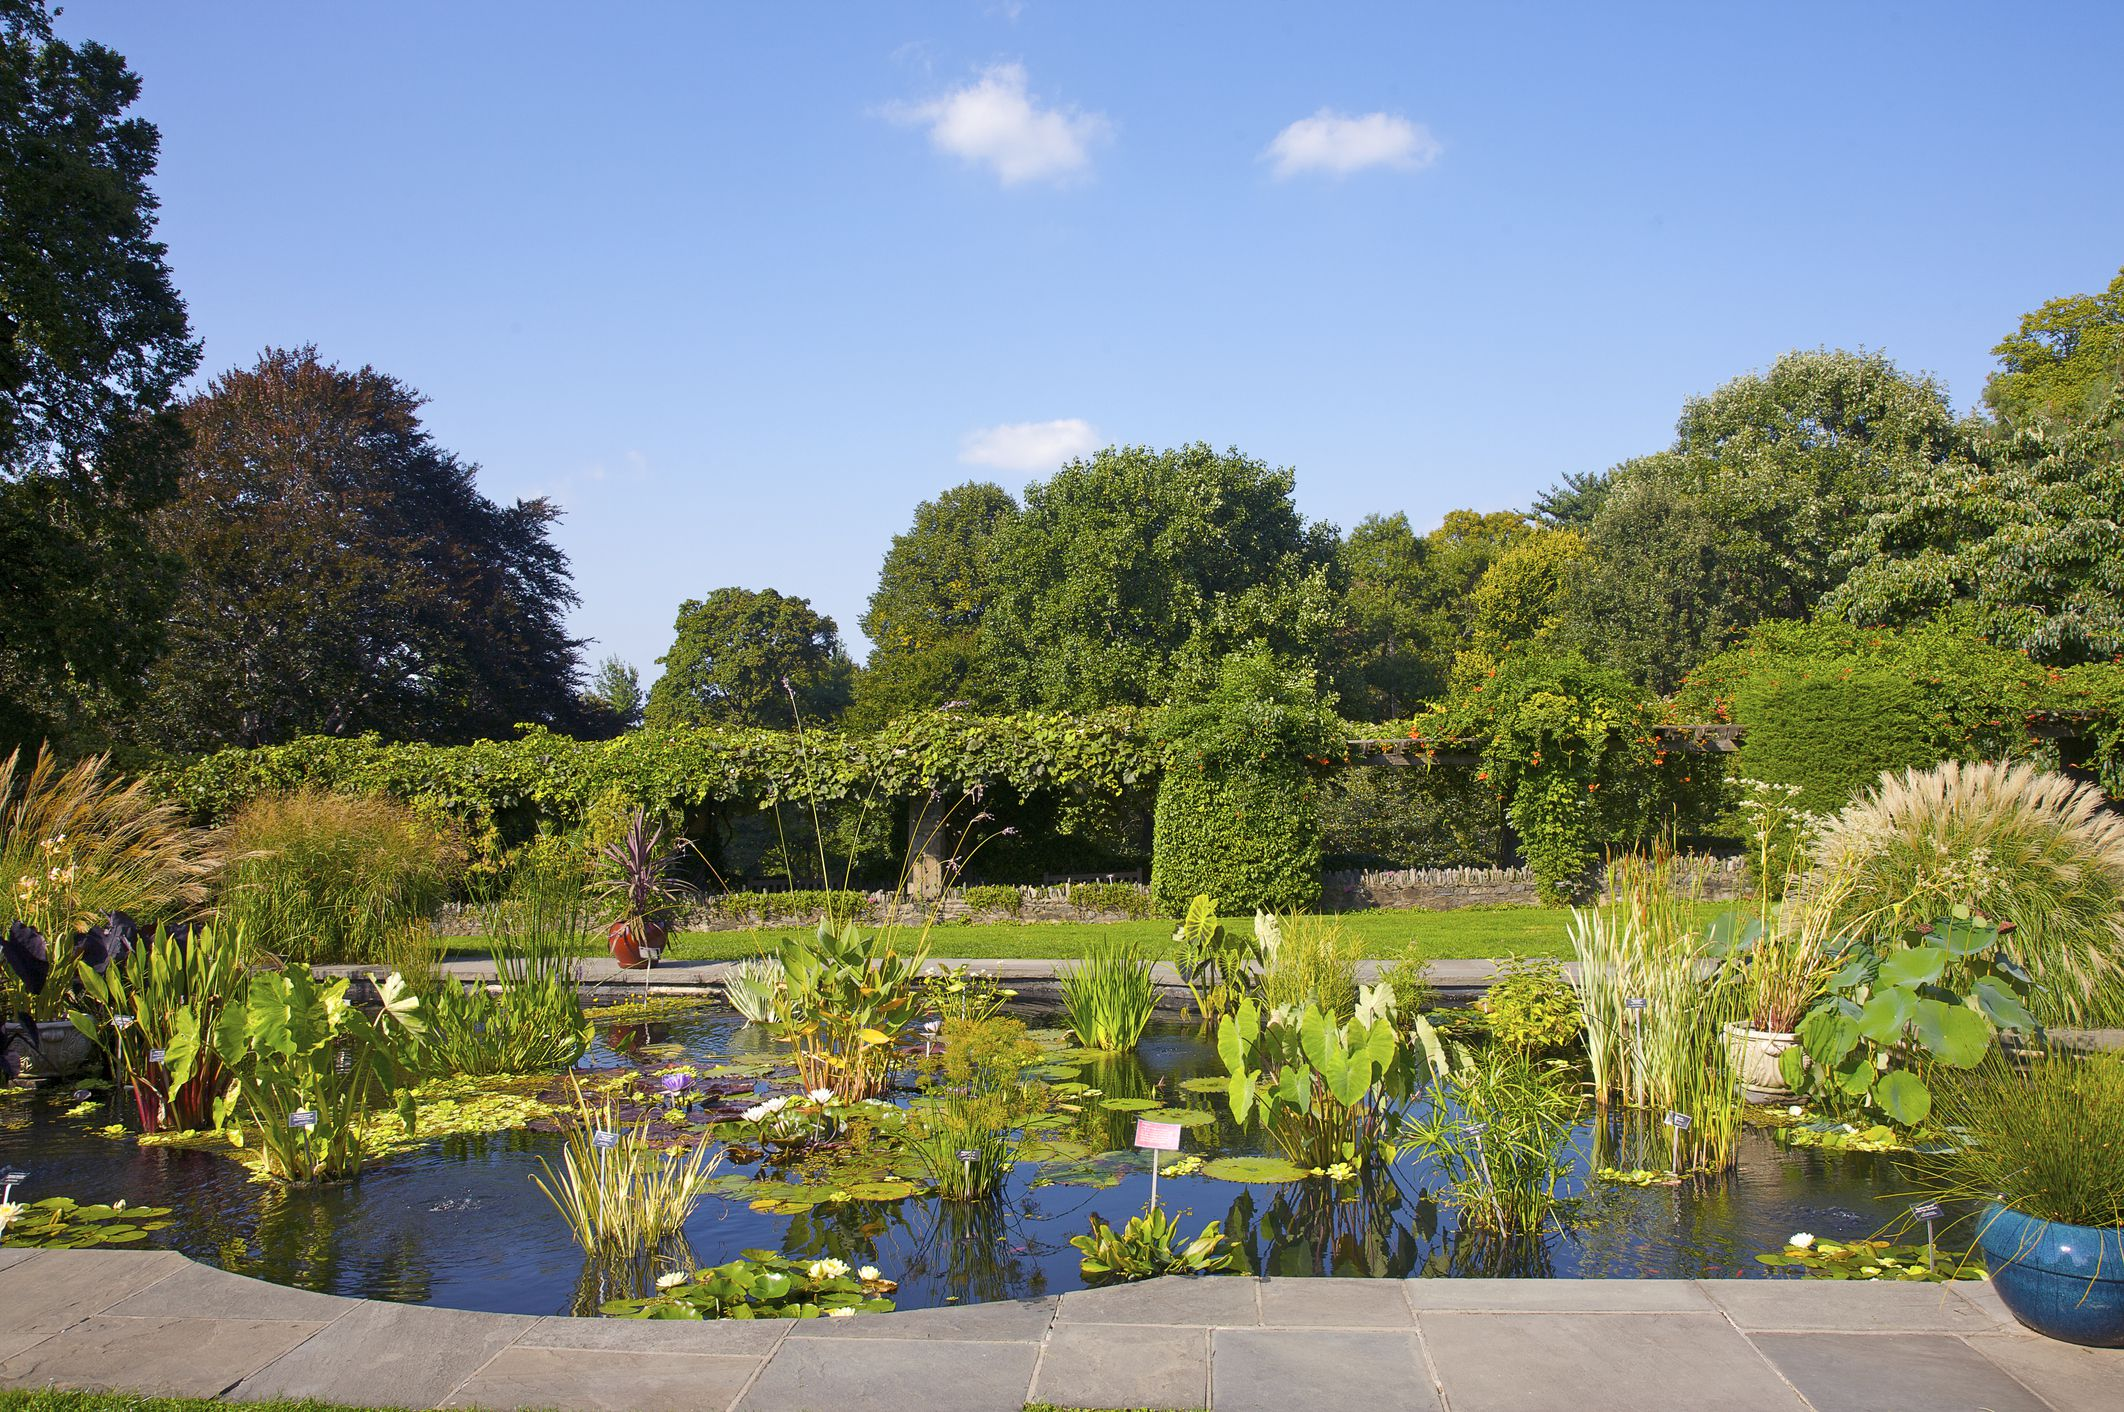 Wave Hill, Aquatic garden, water plants, formal garden pool, Riverdale, The Bronx, New York, NY, U.S.A.